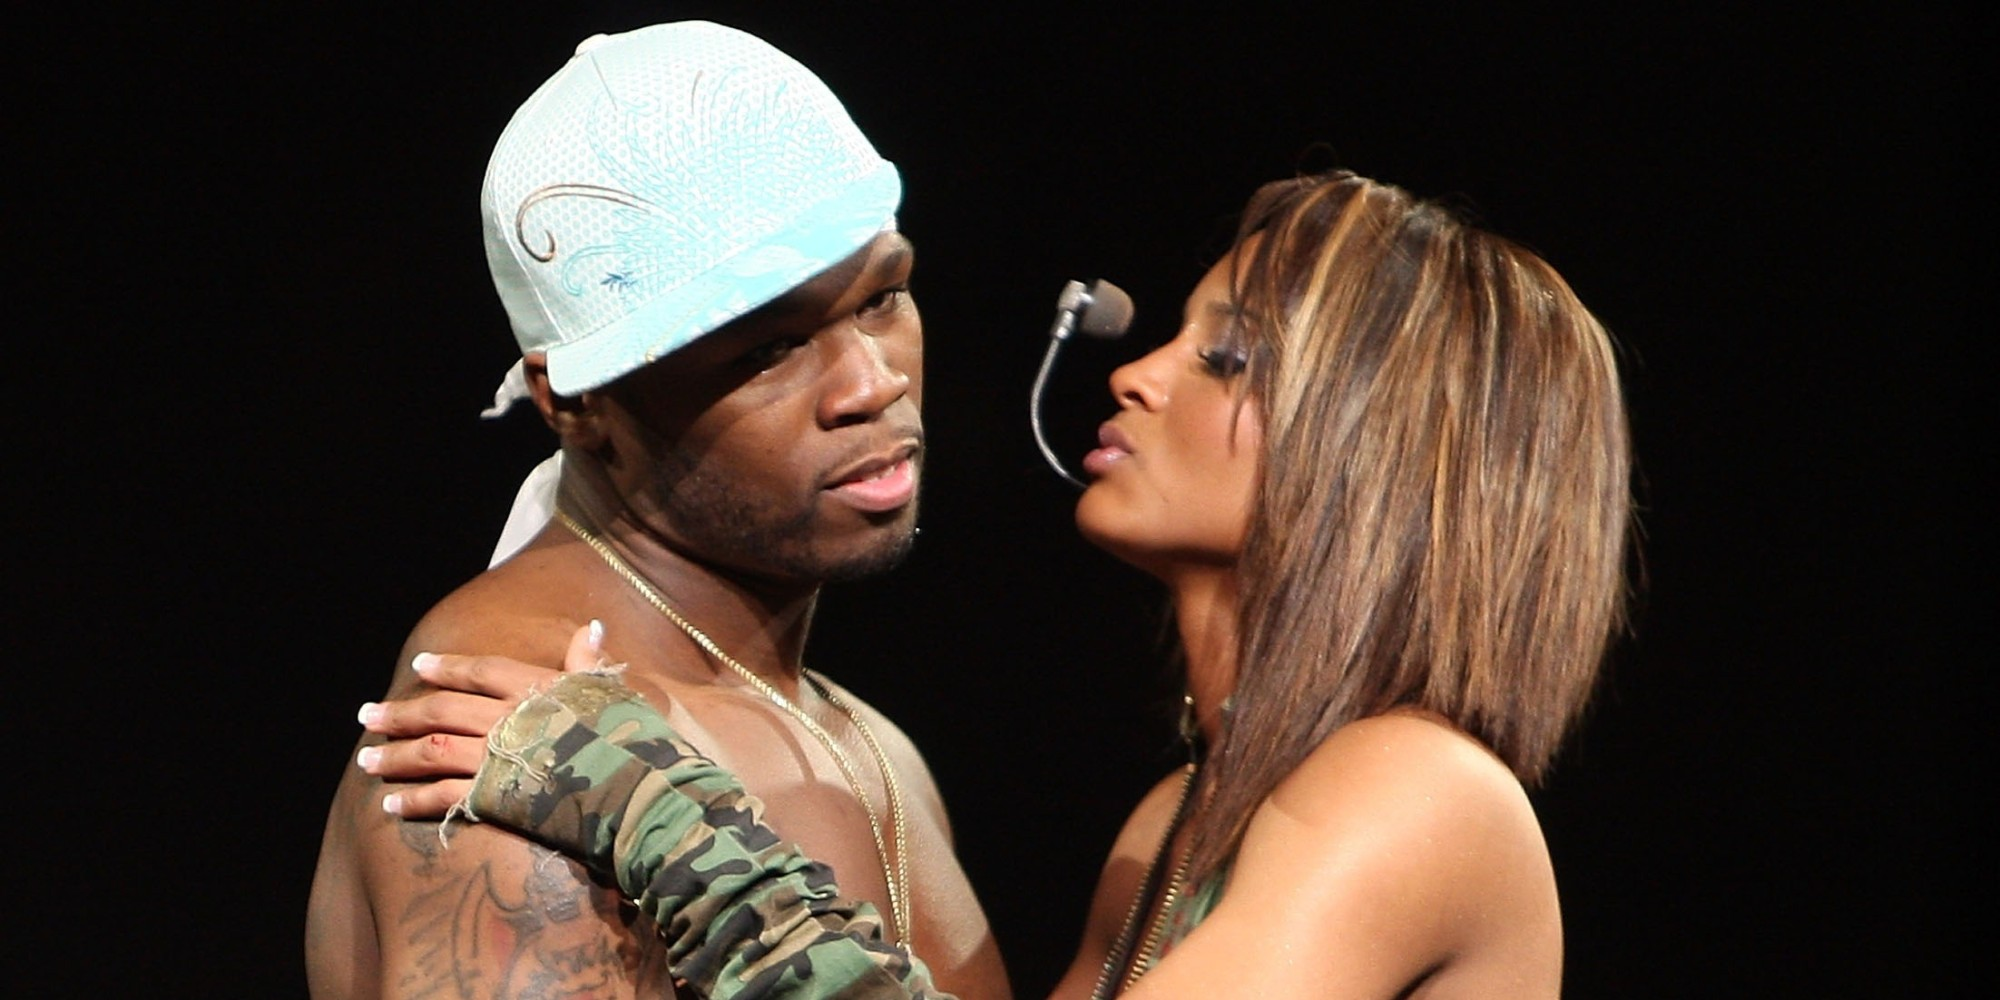 50 cent and ciara dating